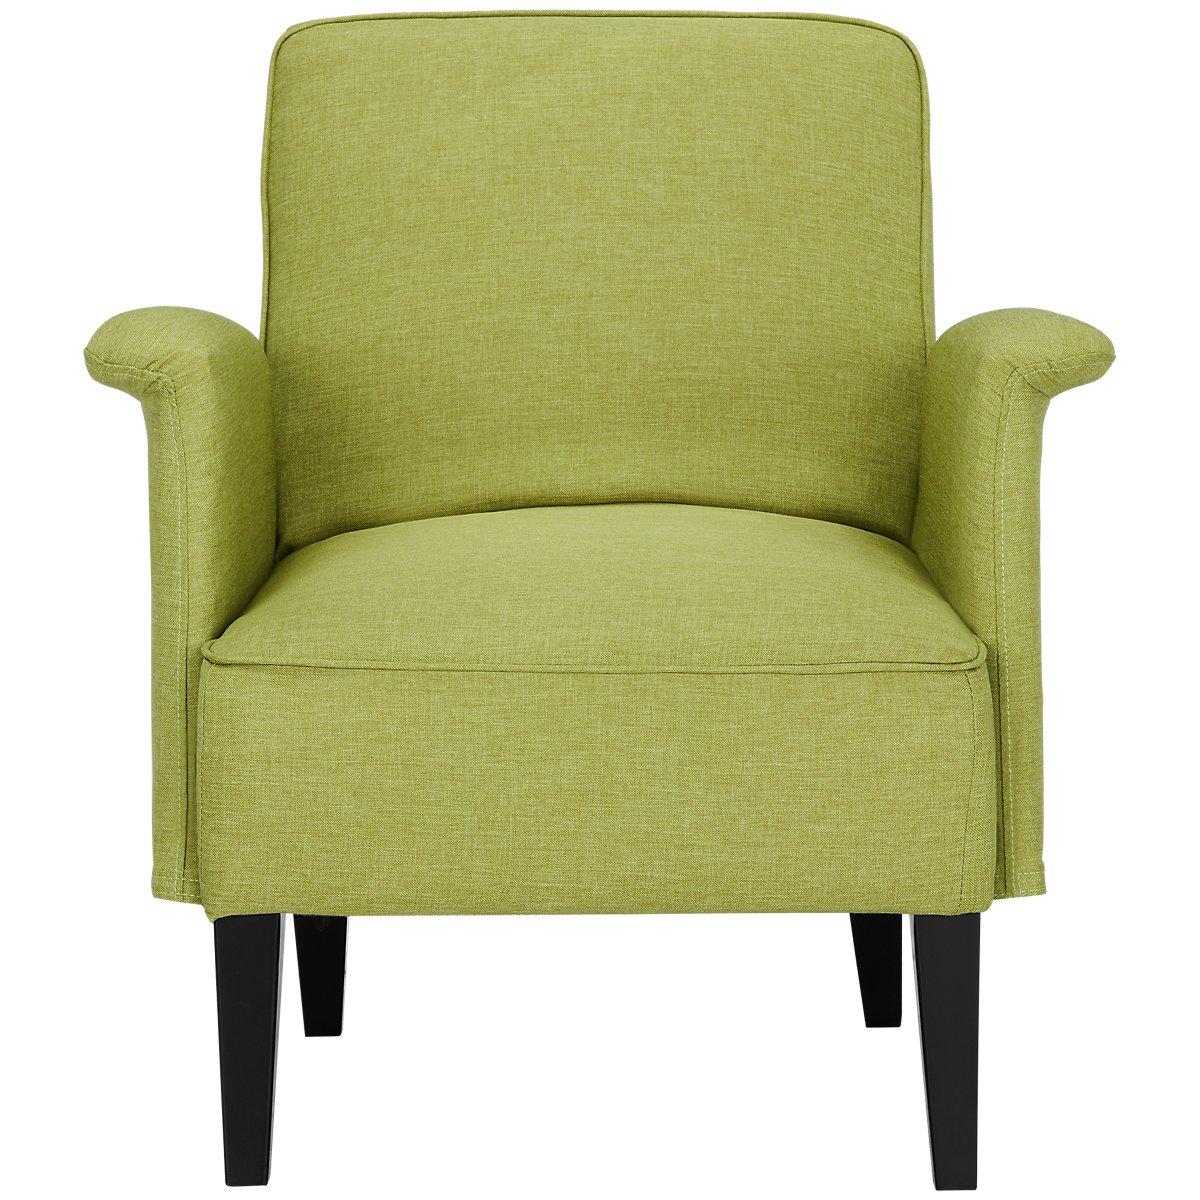 City Furniture Nigel Green Accent Chair